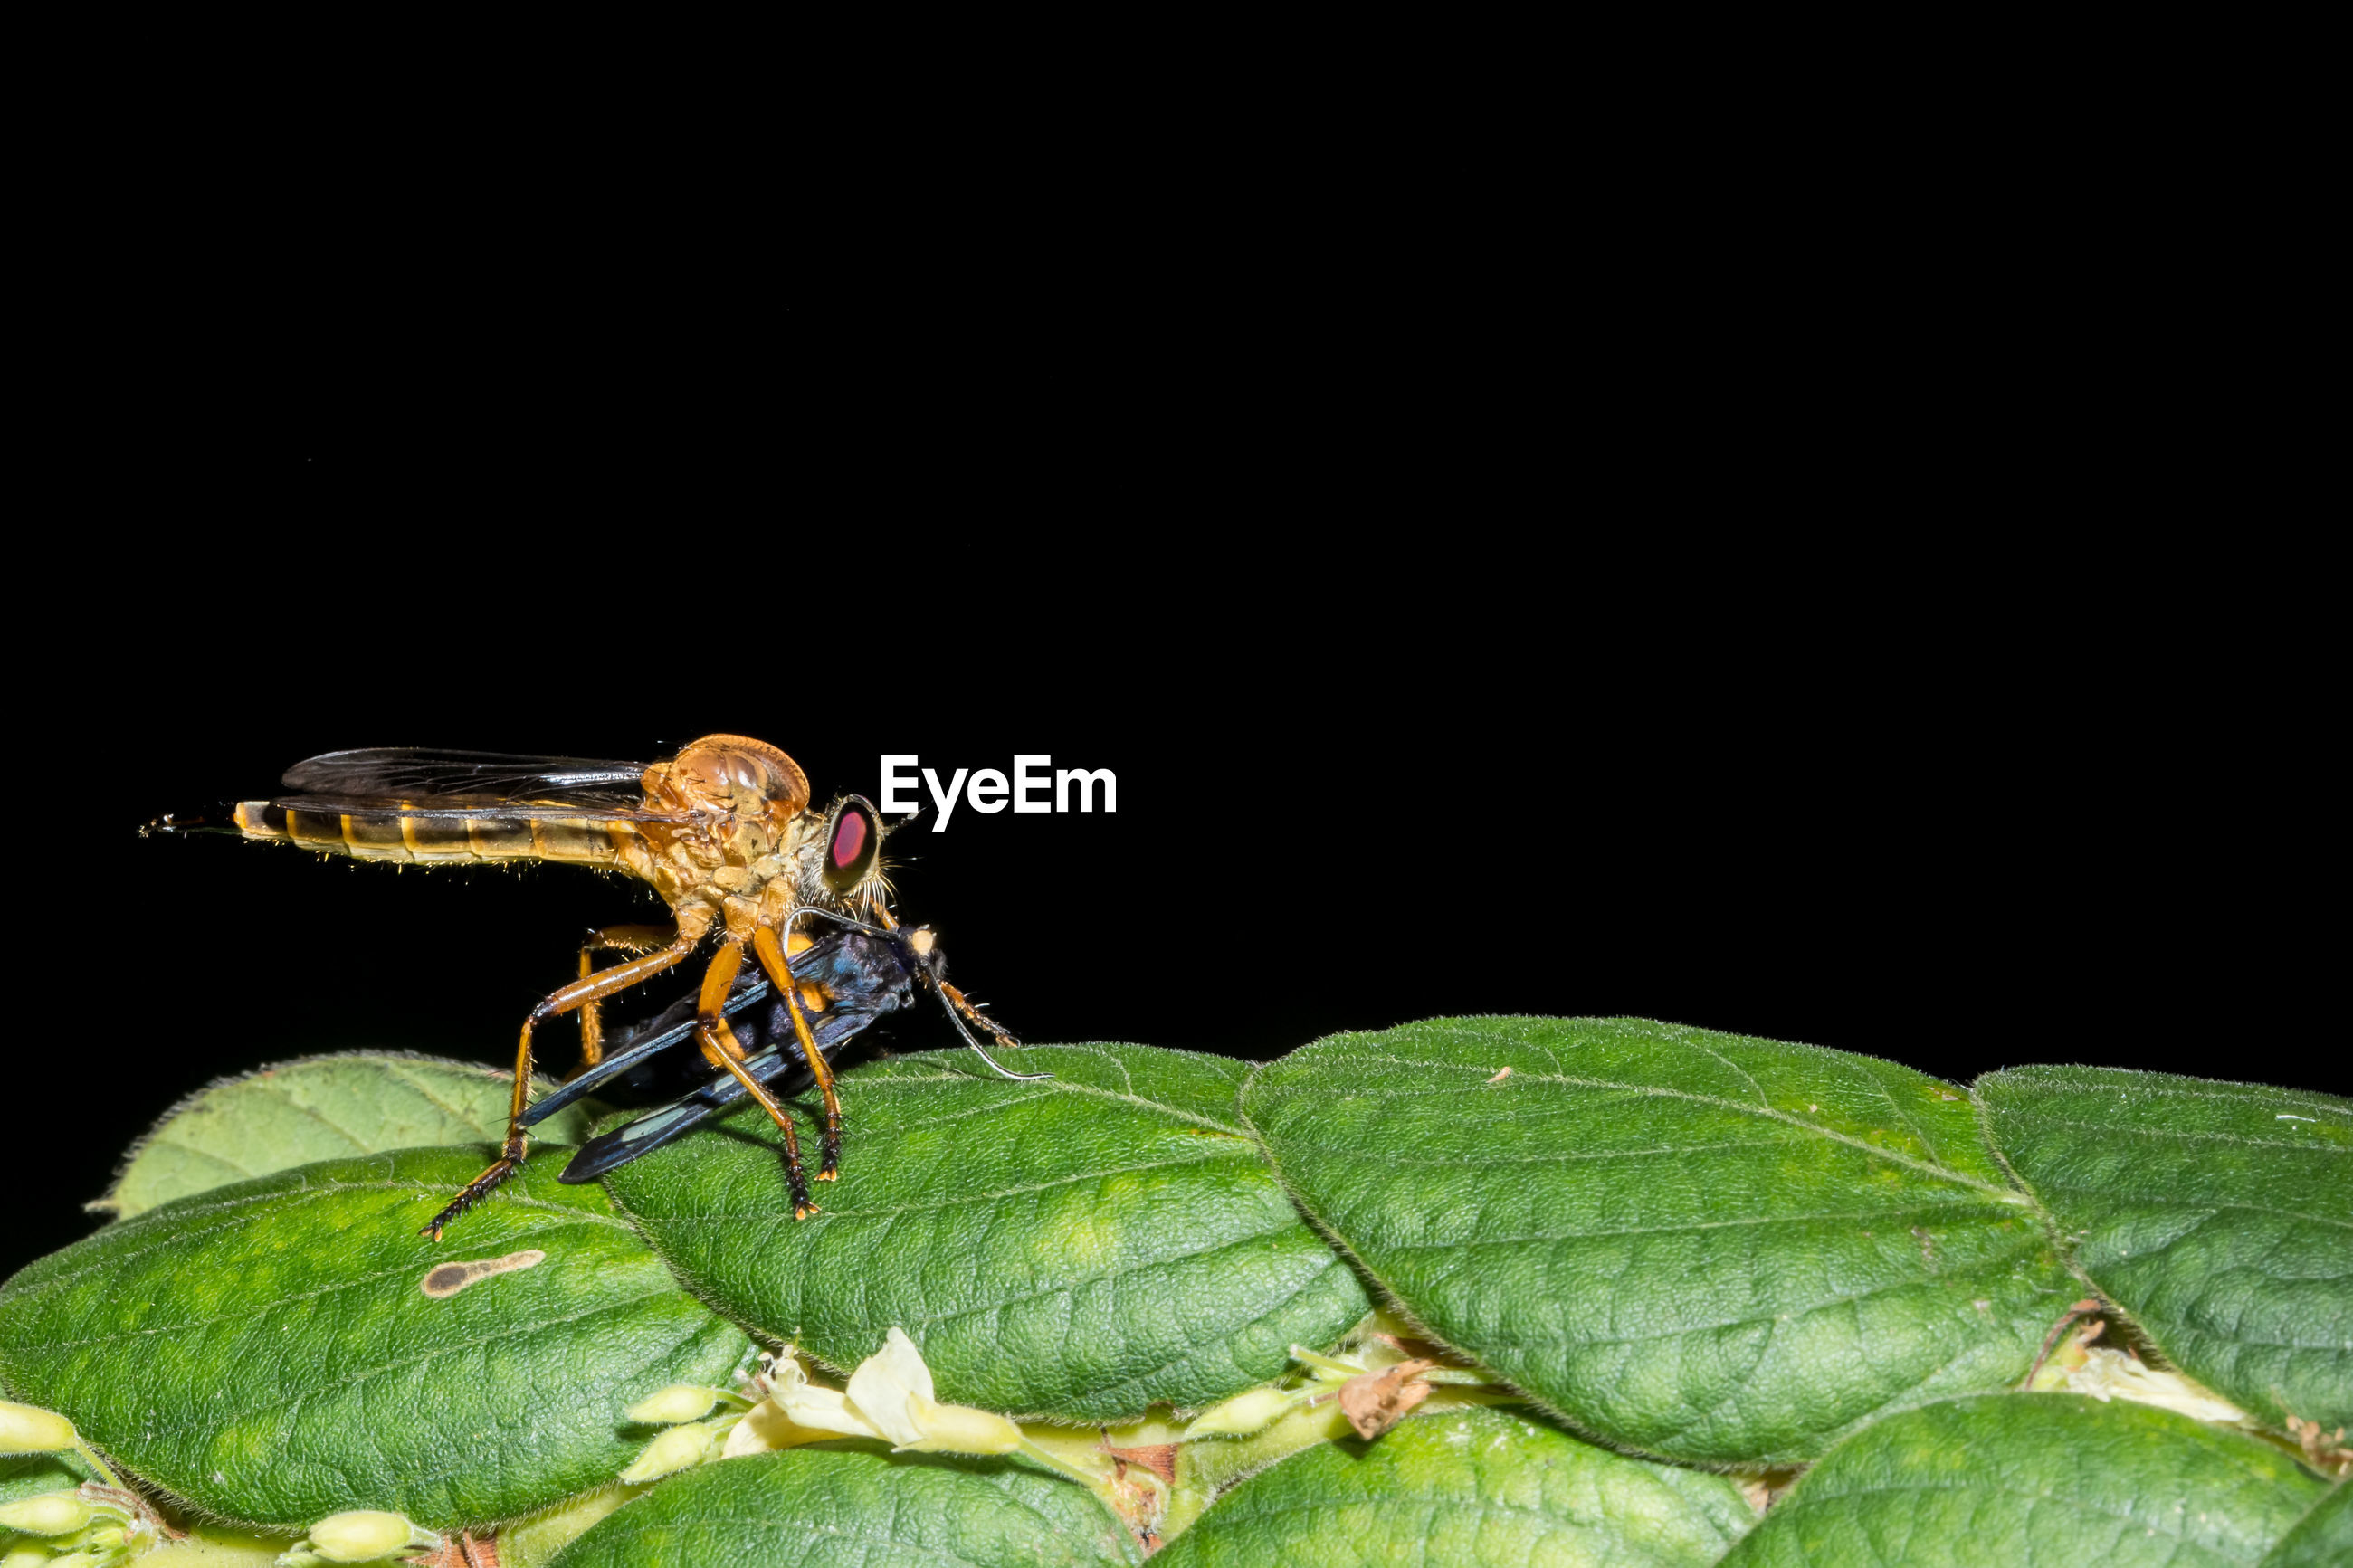 Close-up of dragonfly hunting insect on leaf